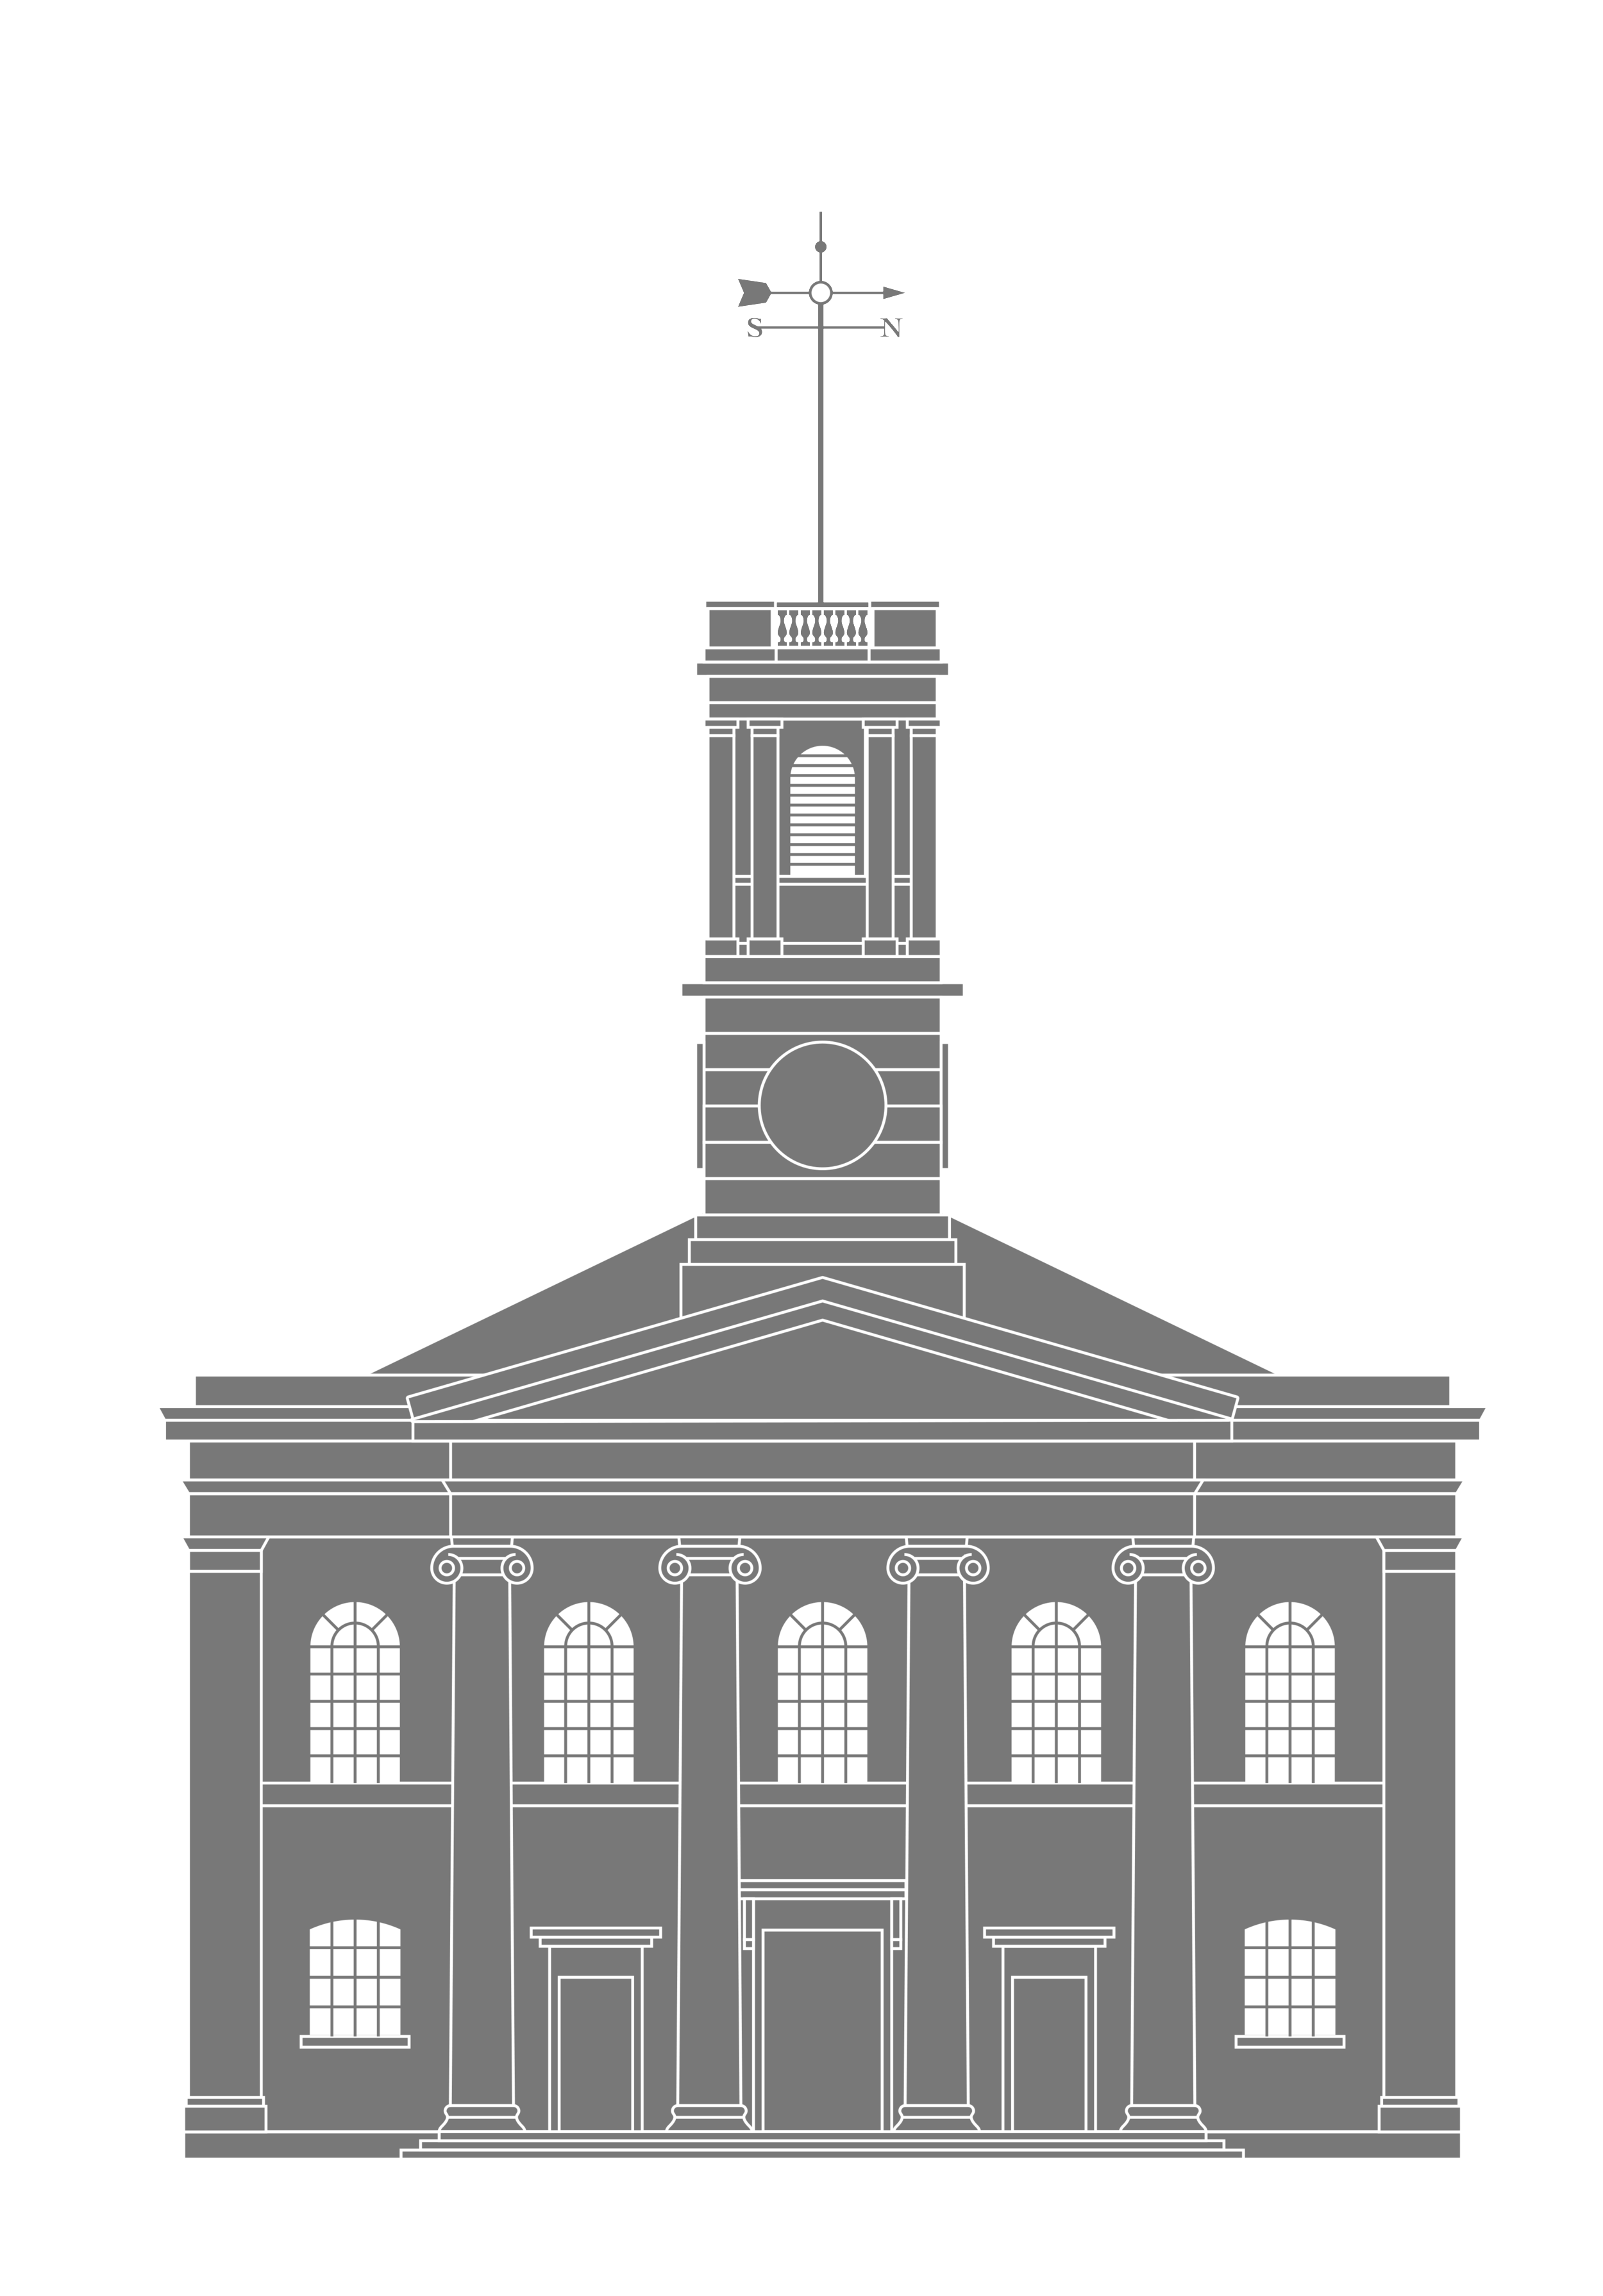 An original drawing for the front elevation was meticulously traced to create this new image, which was progressively simplified to use in the logotype.